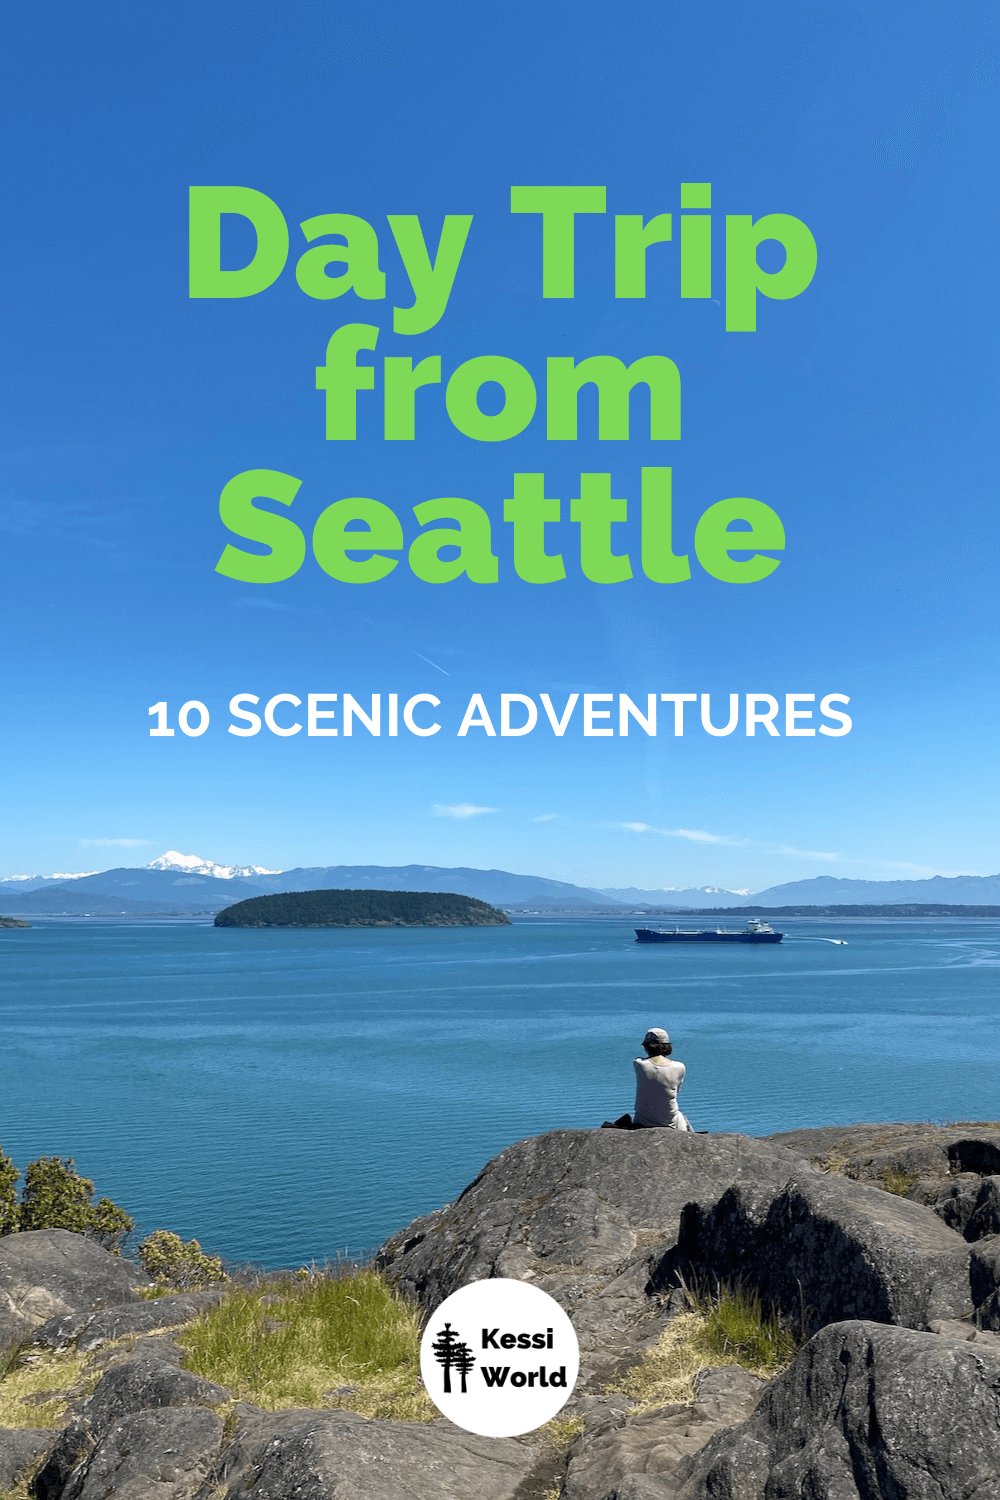 The title of this Pinterest tile reads Day Trip from Seattle and shows a scene from the viewpoint of Cap Sante Park in Anacortes, Washington. A woman sits on top of a giant boulder with other rocks around and some patches of bright green grass. She looks out towards snow capped Mount Baker and the vast water of the Puget Sound. There is a large merchant ship in the channel and a fir tree covered island. The sky is bright blue.